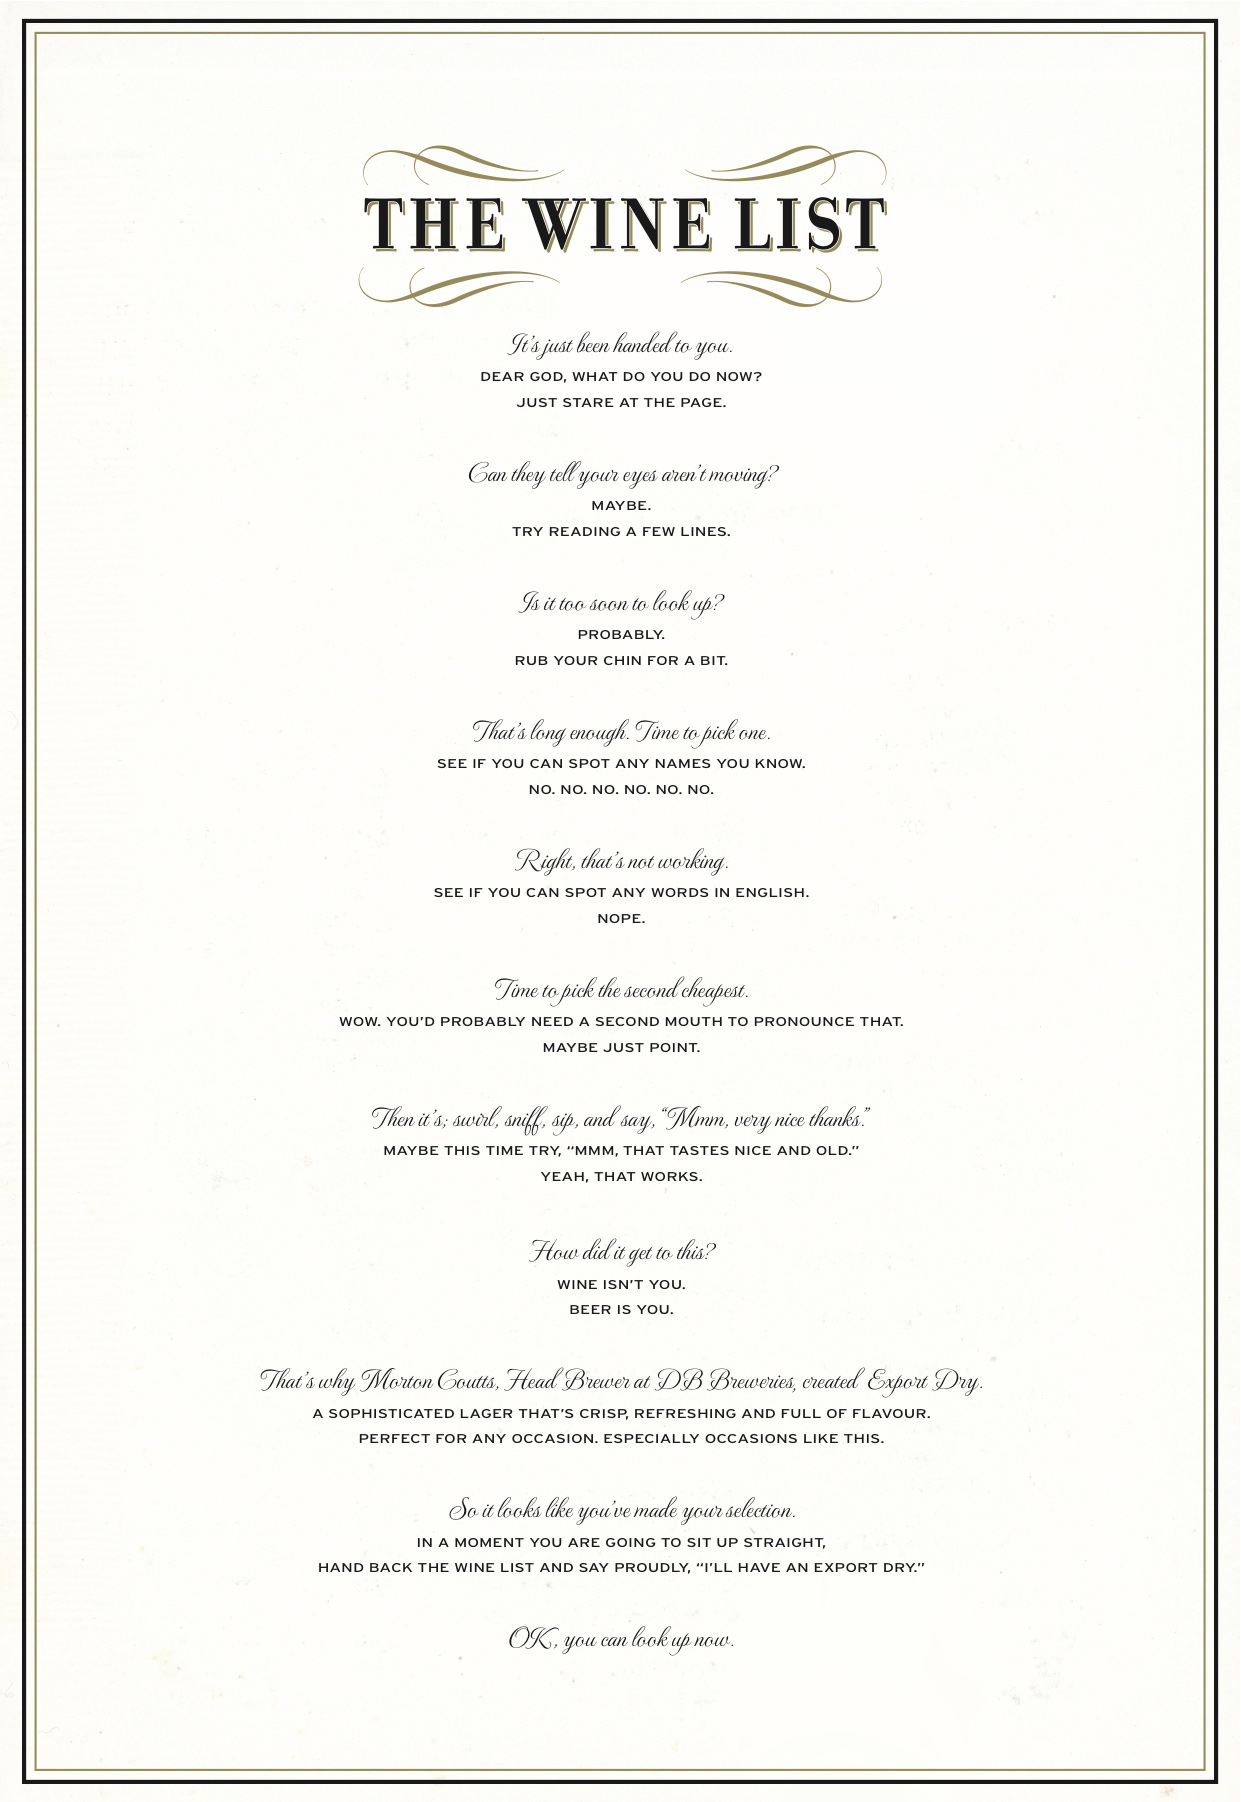 DB Export Dry Print Advert By BBDO The Wine List – Free Wine List Template